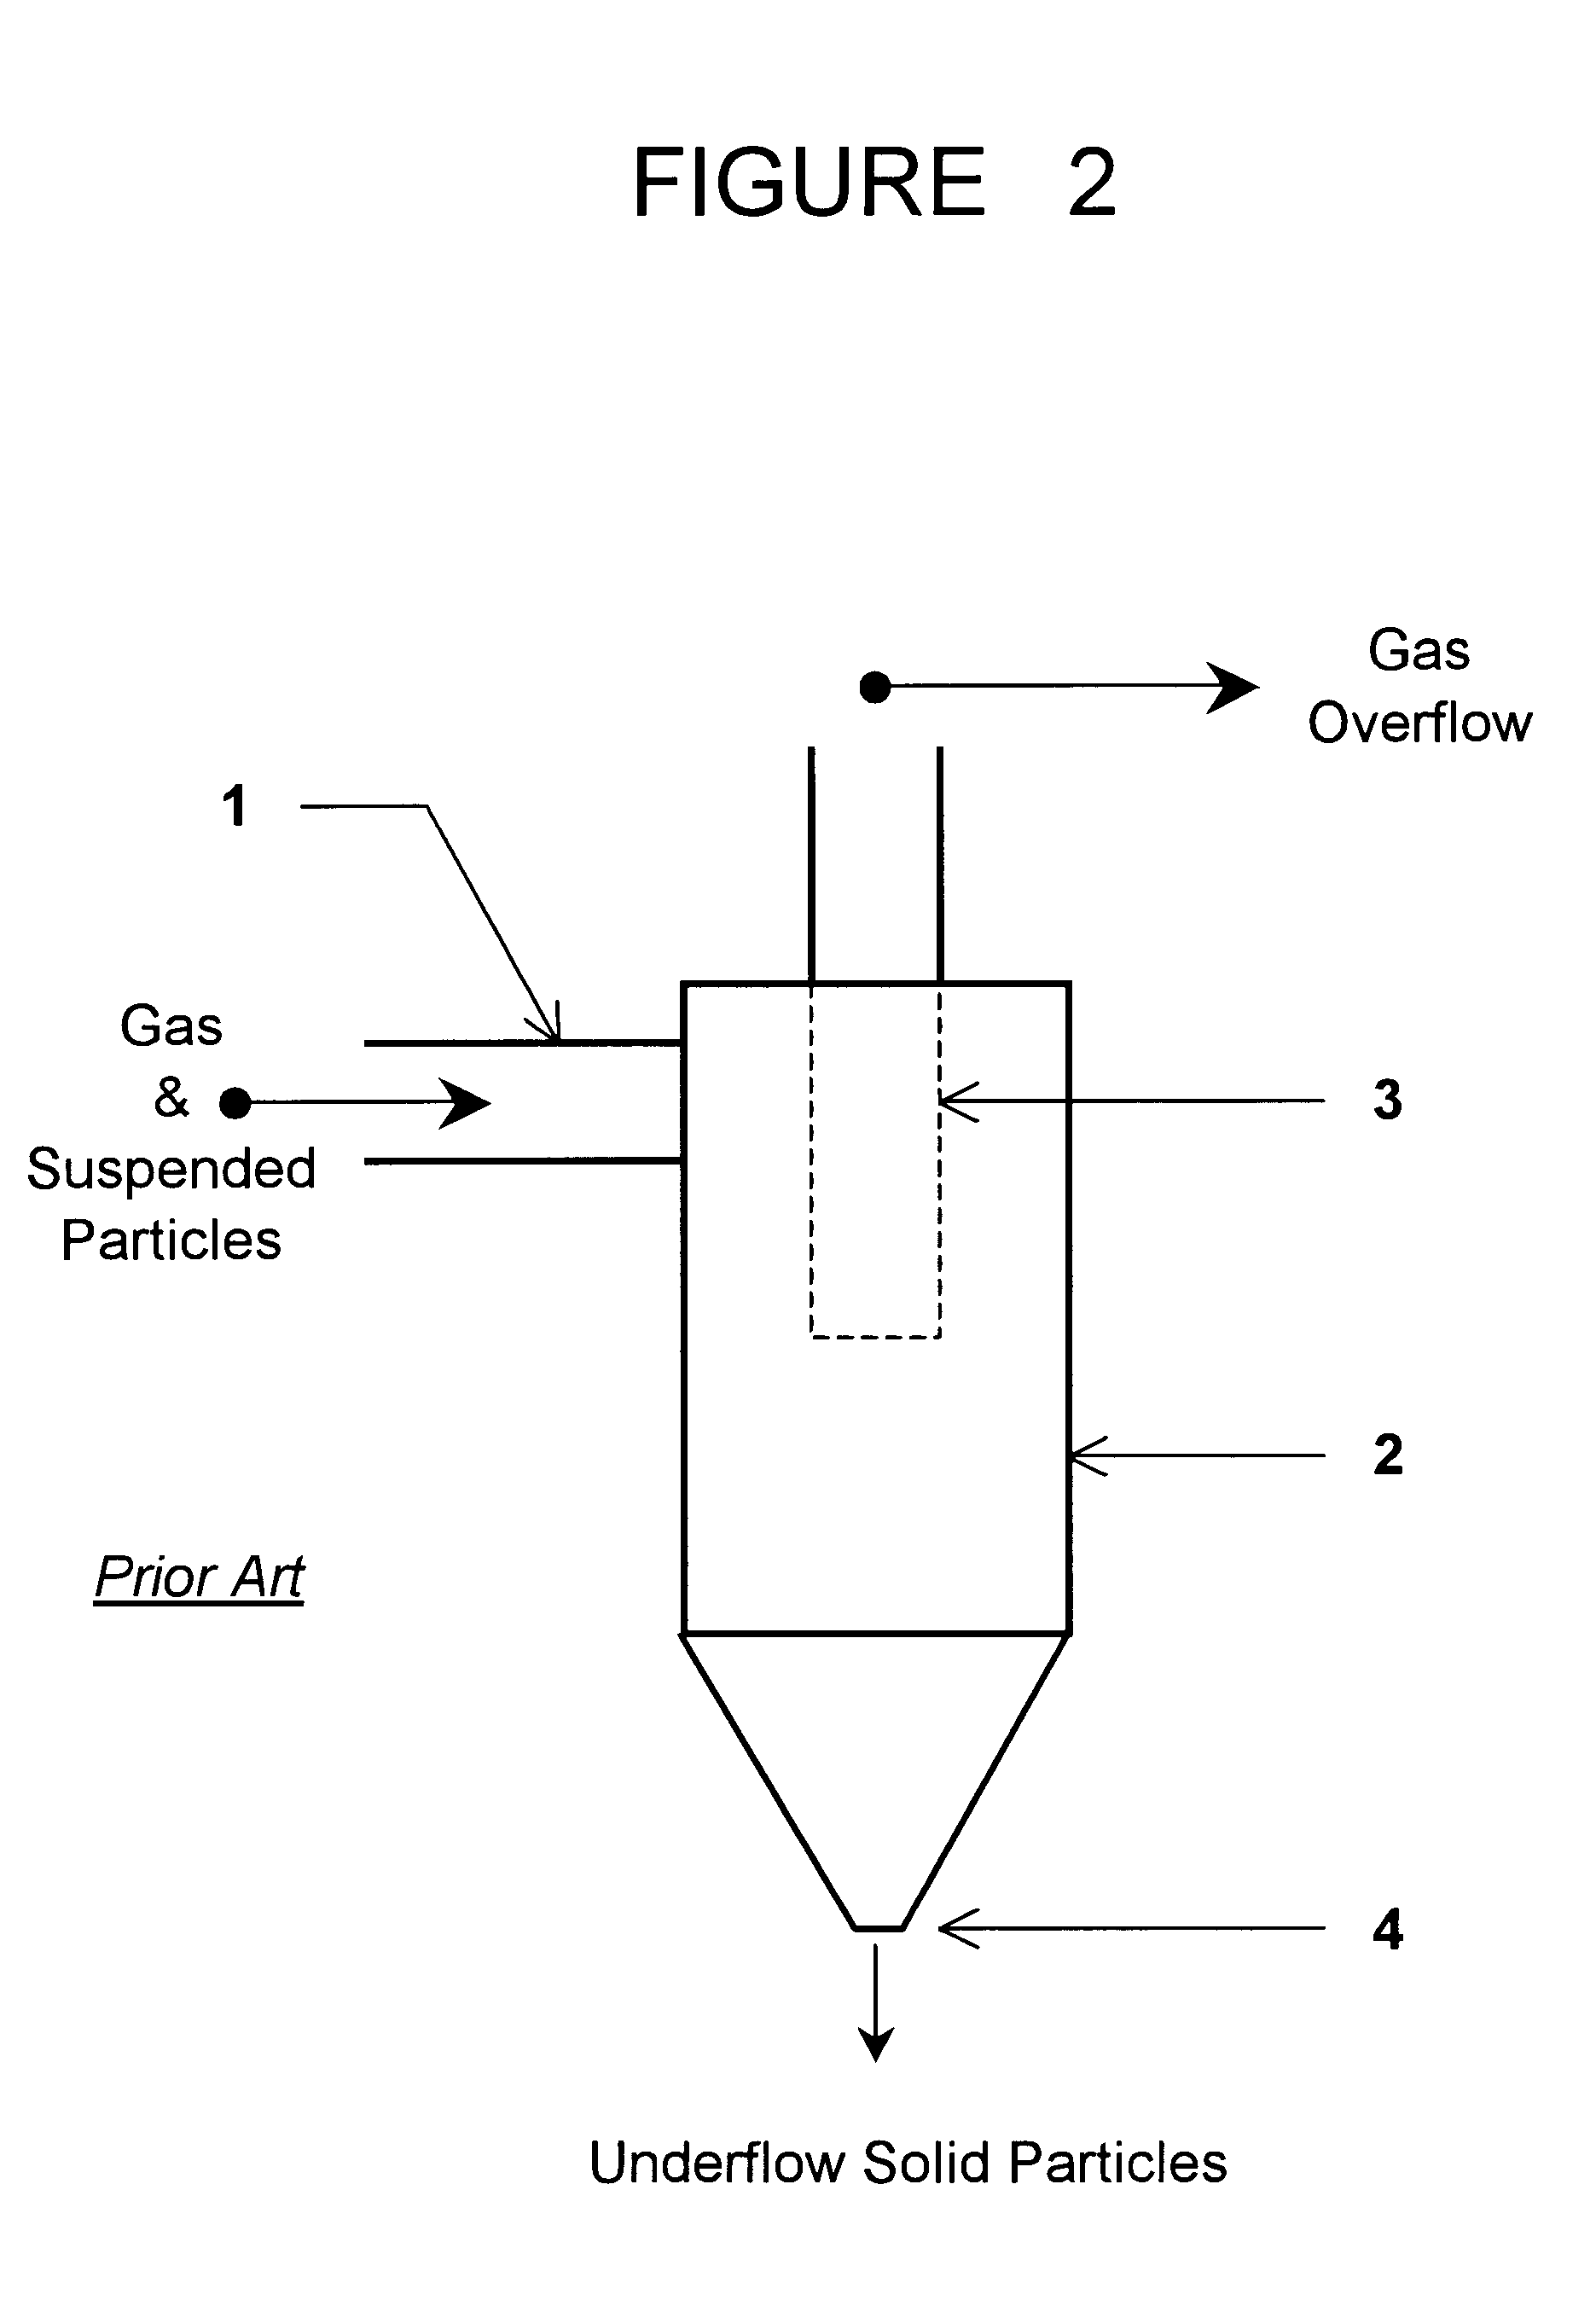 Accident Investigation   Rca besides Simple Automatic Water Level Controller Circuit also Pornichet additionally Hvdc besides Intel 4004 17393720. on direct current diagram